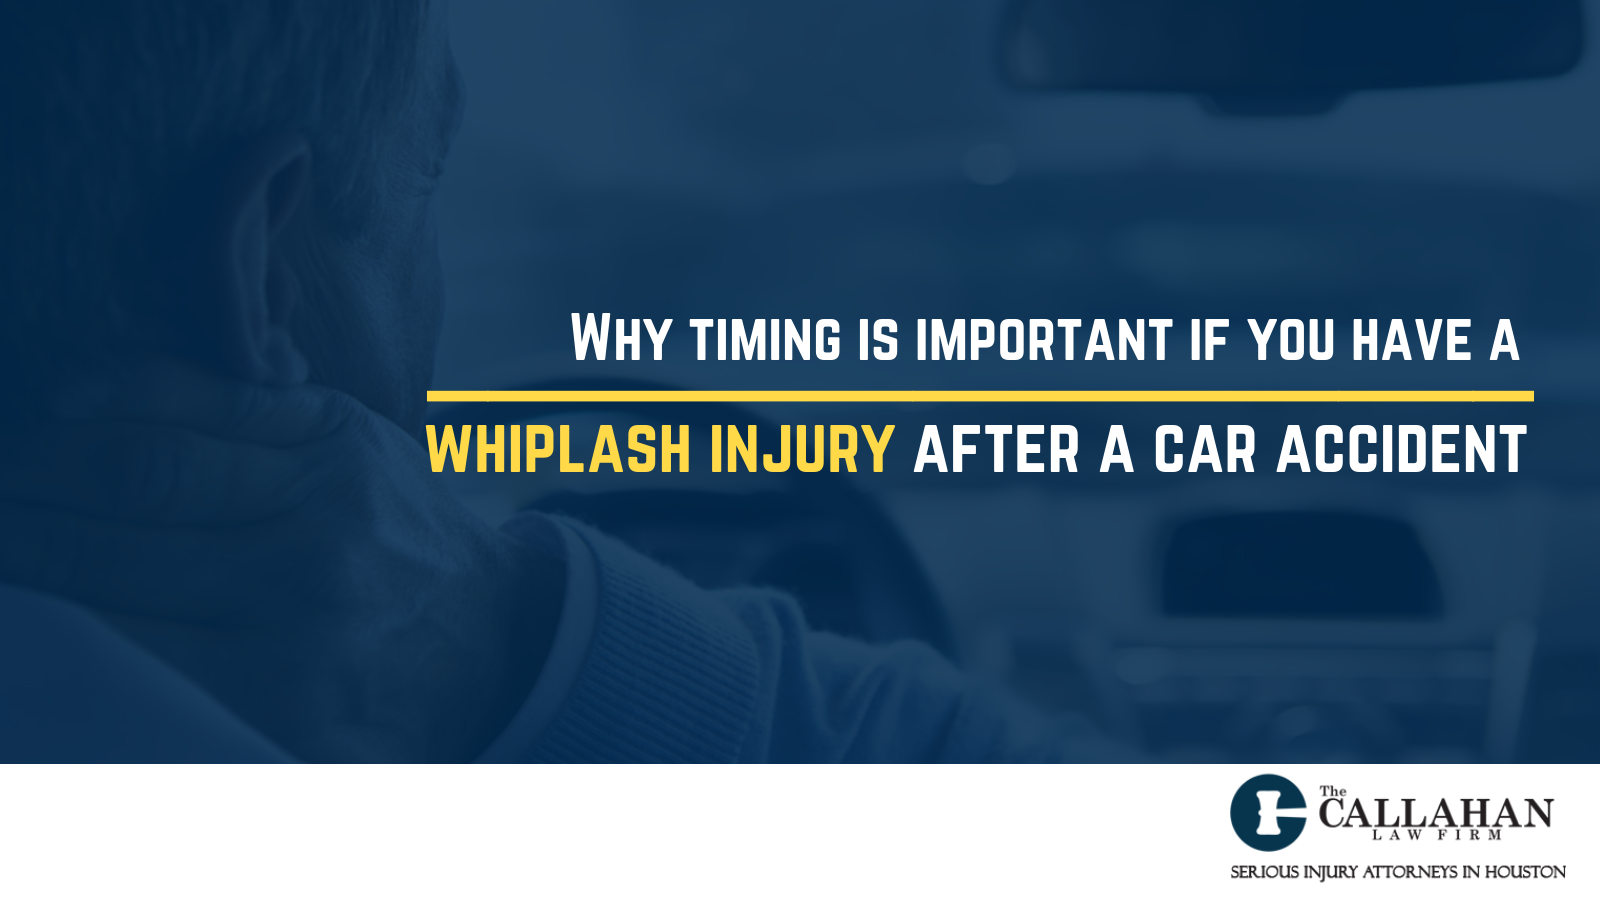 Why timing is important if you have a whiplash injury after a car accident - callahan law firm - houston texas - injury attorney